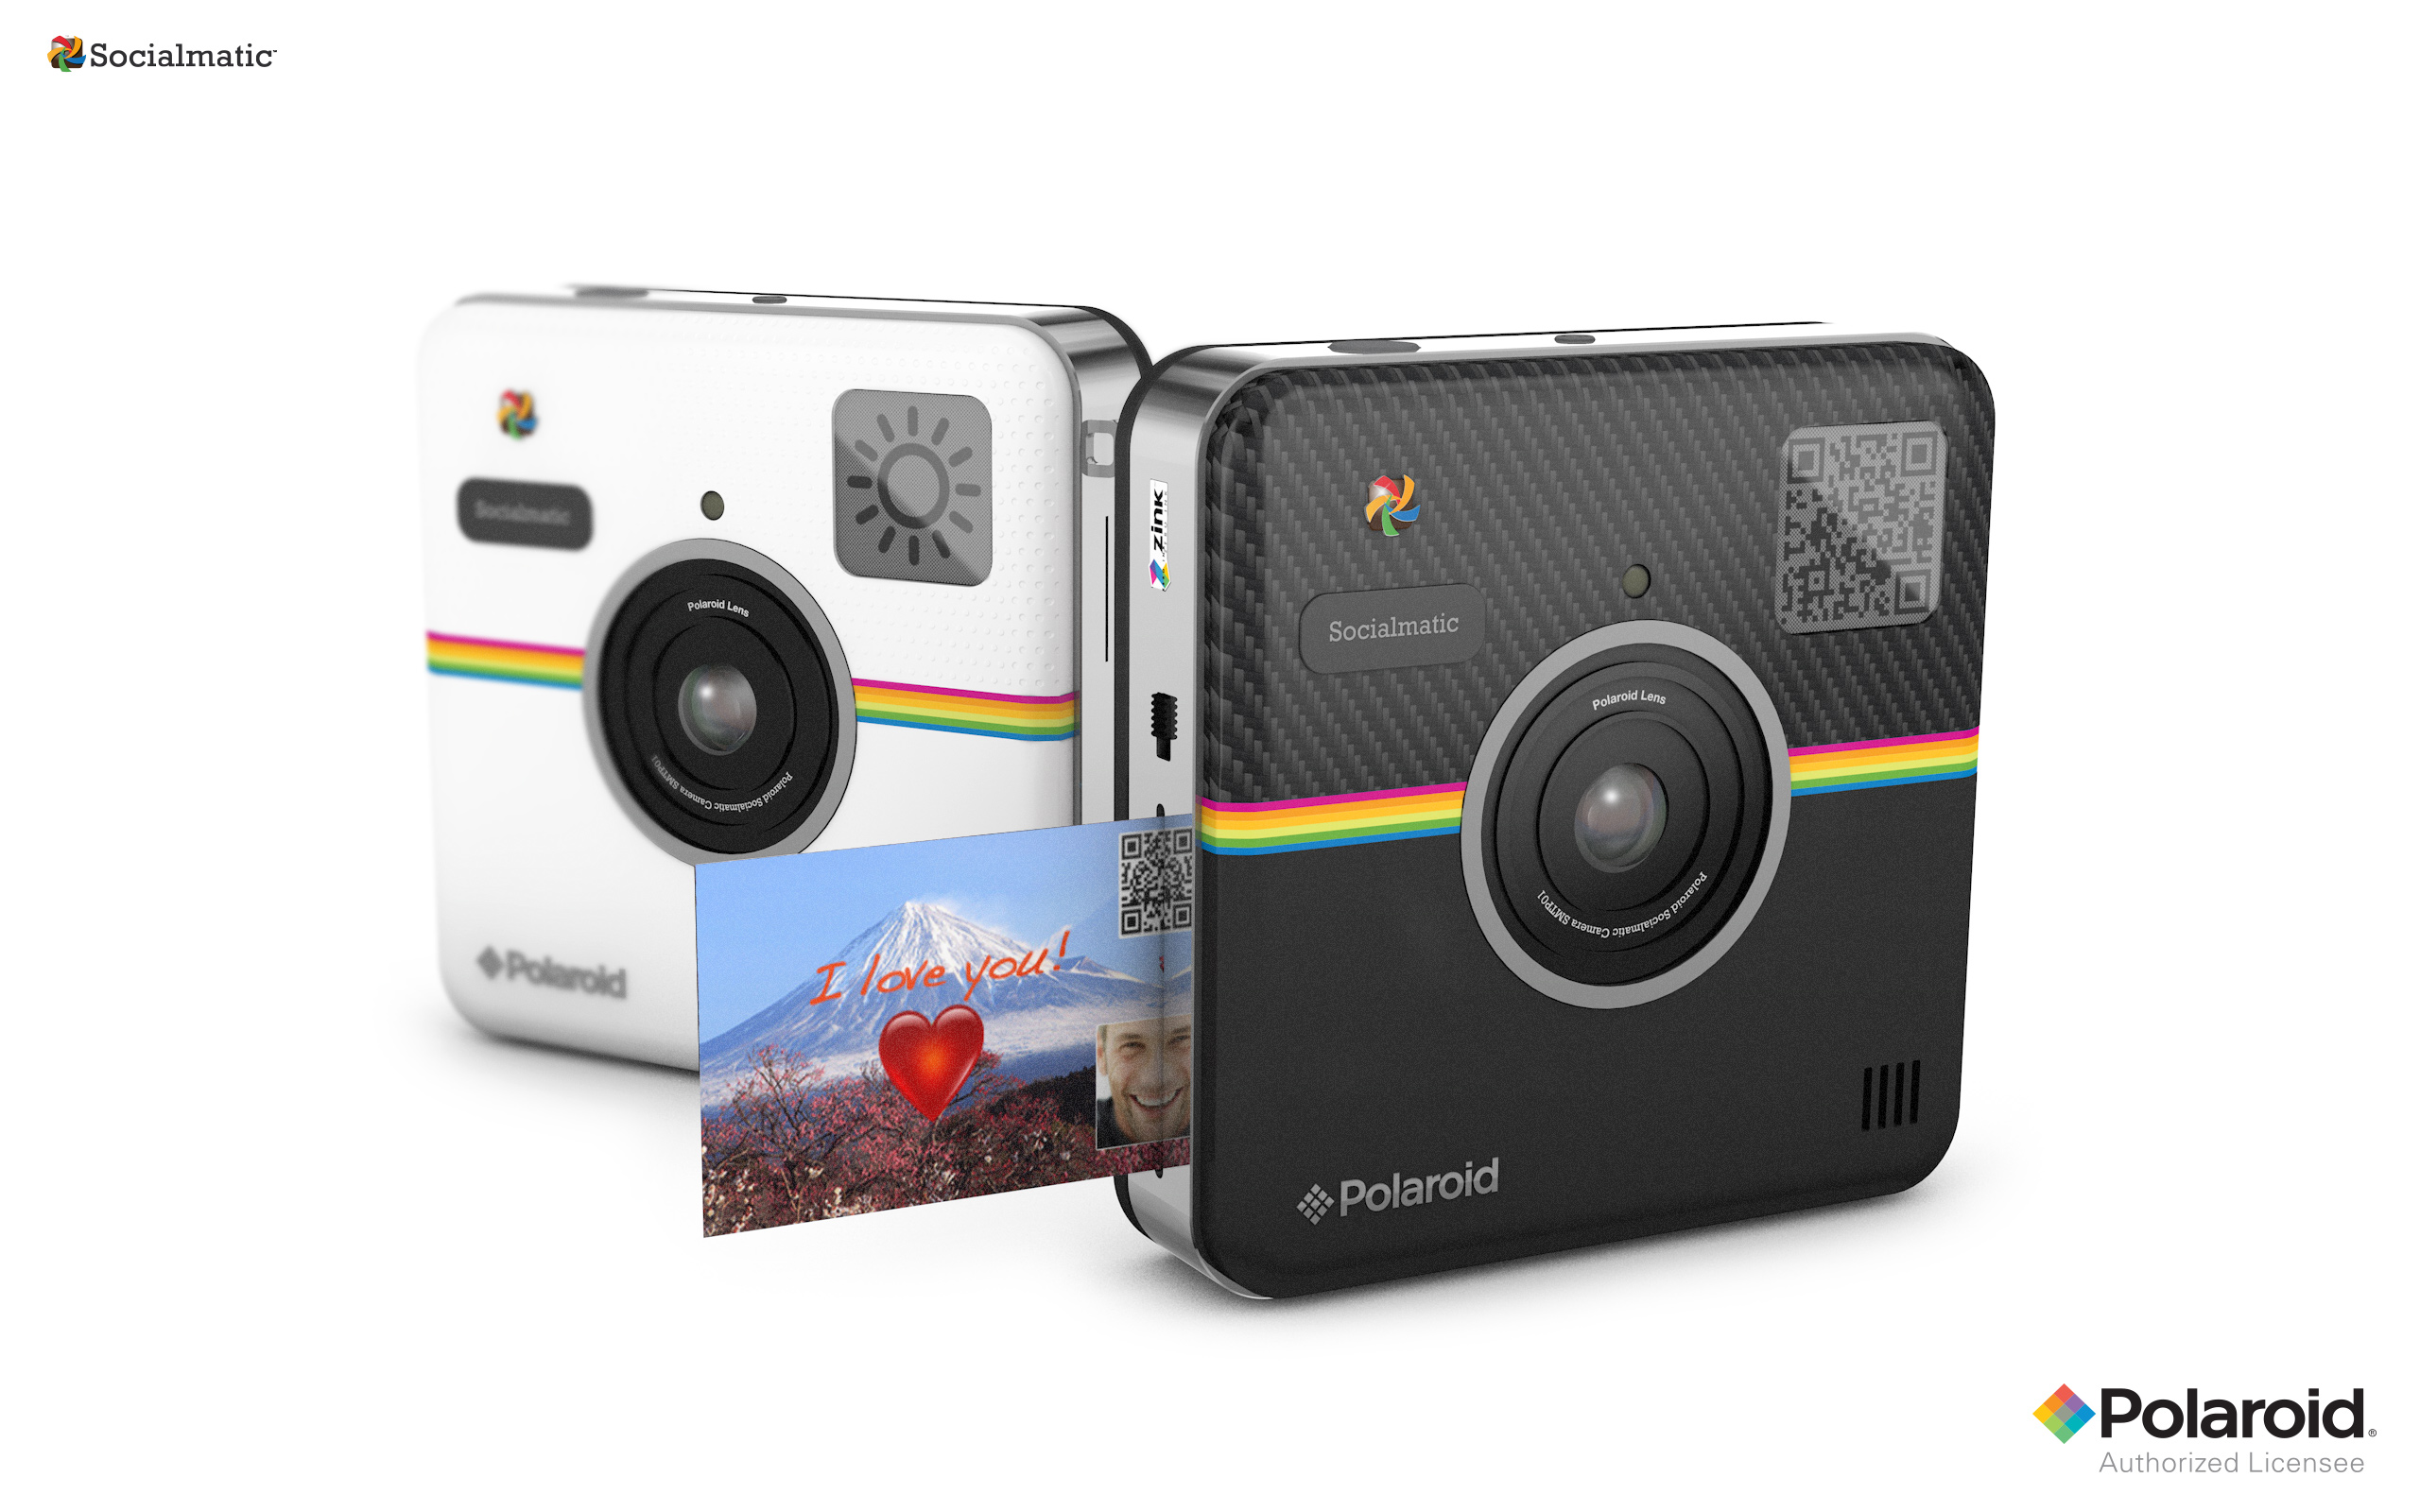 Polaroid Socialmatic Camera Prints Your Photos As Soon As You Take Them